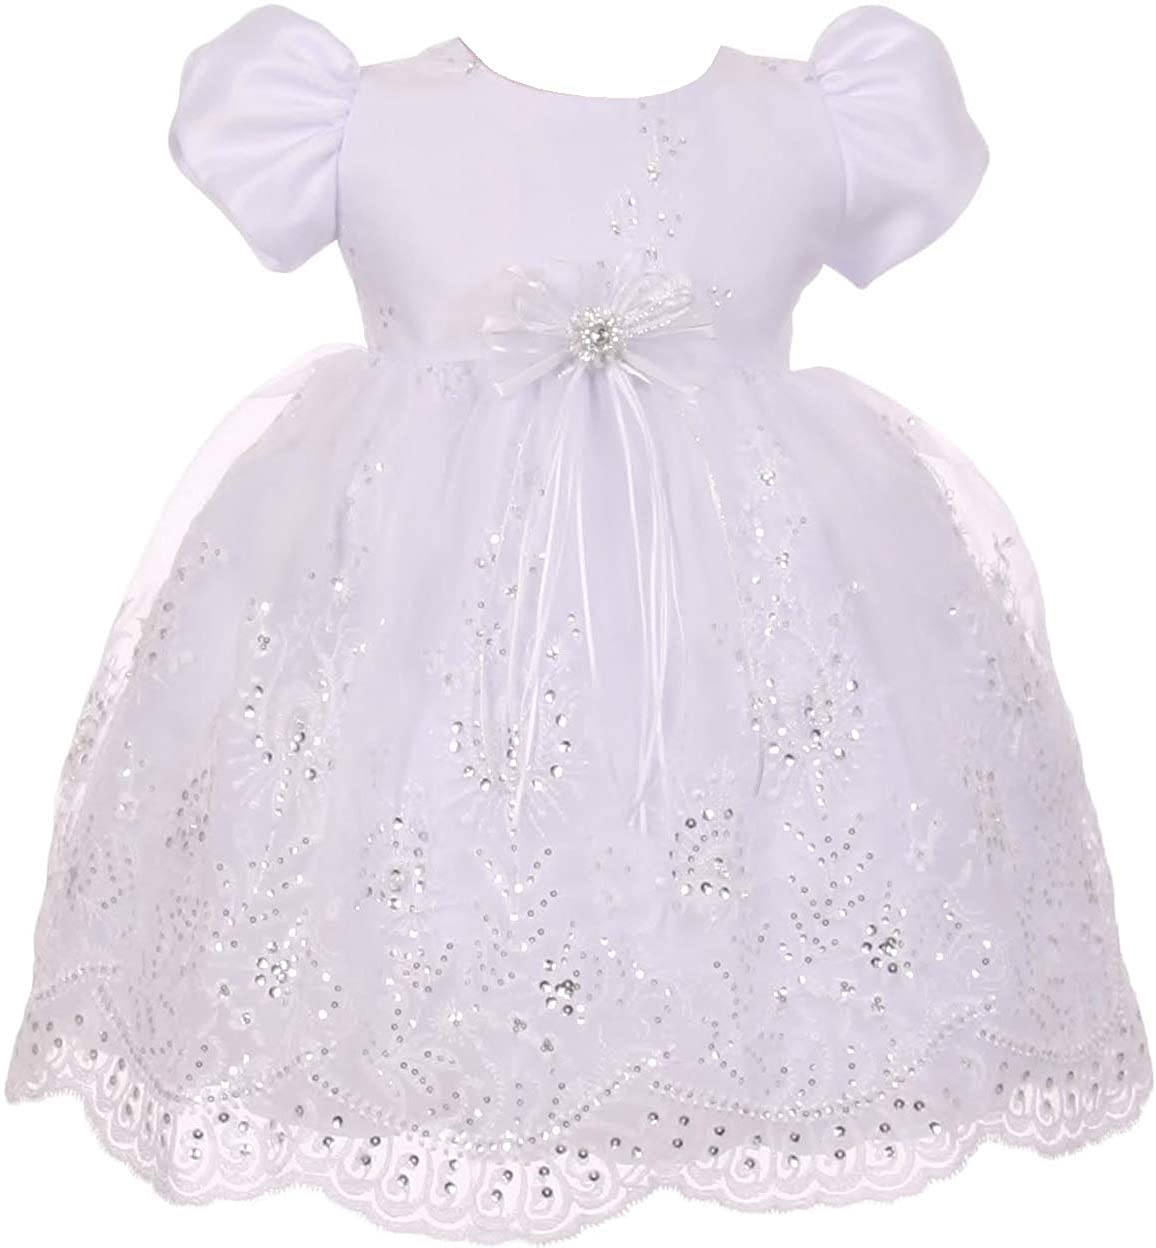 BluNight Collection Sheer Organza Cape Headband Baptism Infant Little Baby Girl Dresses